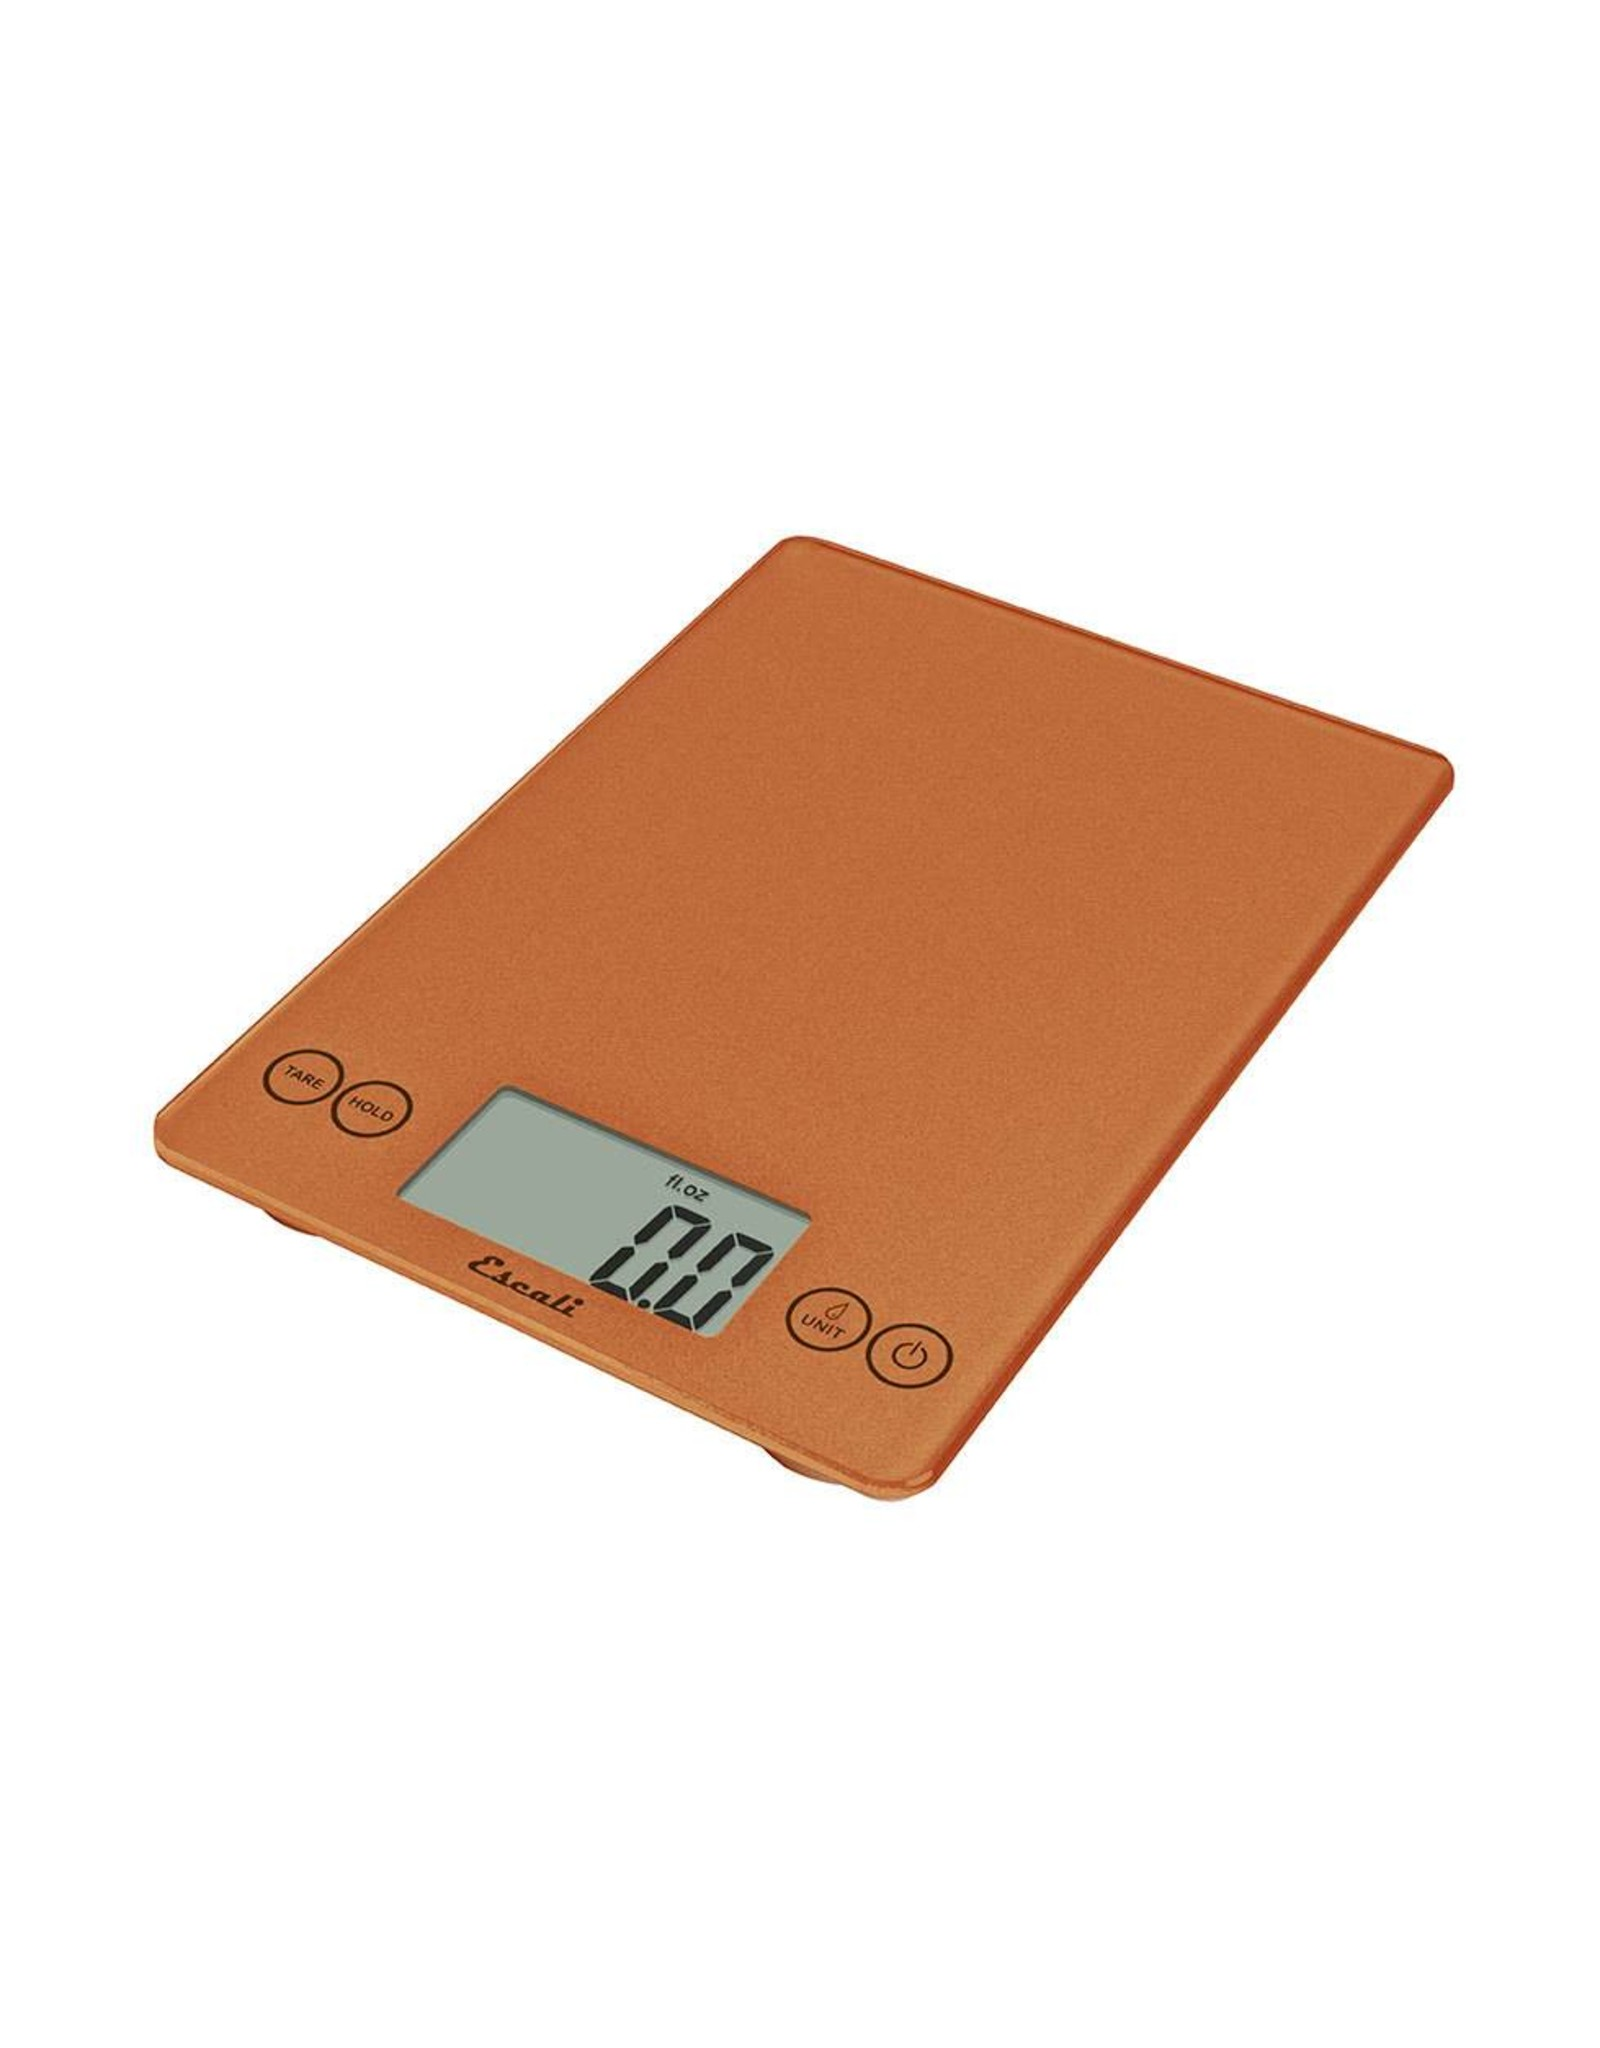 Escali Arti Digital Scale - Cinnamon